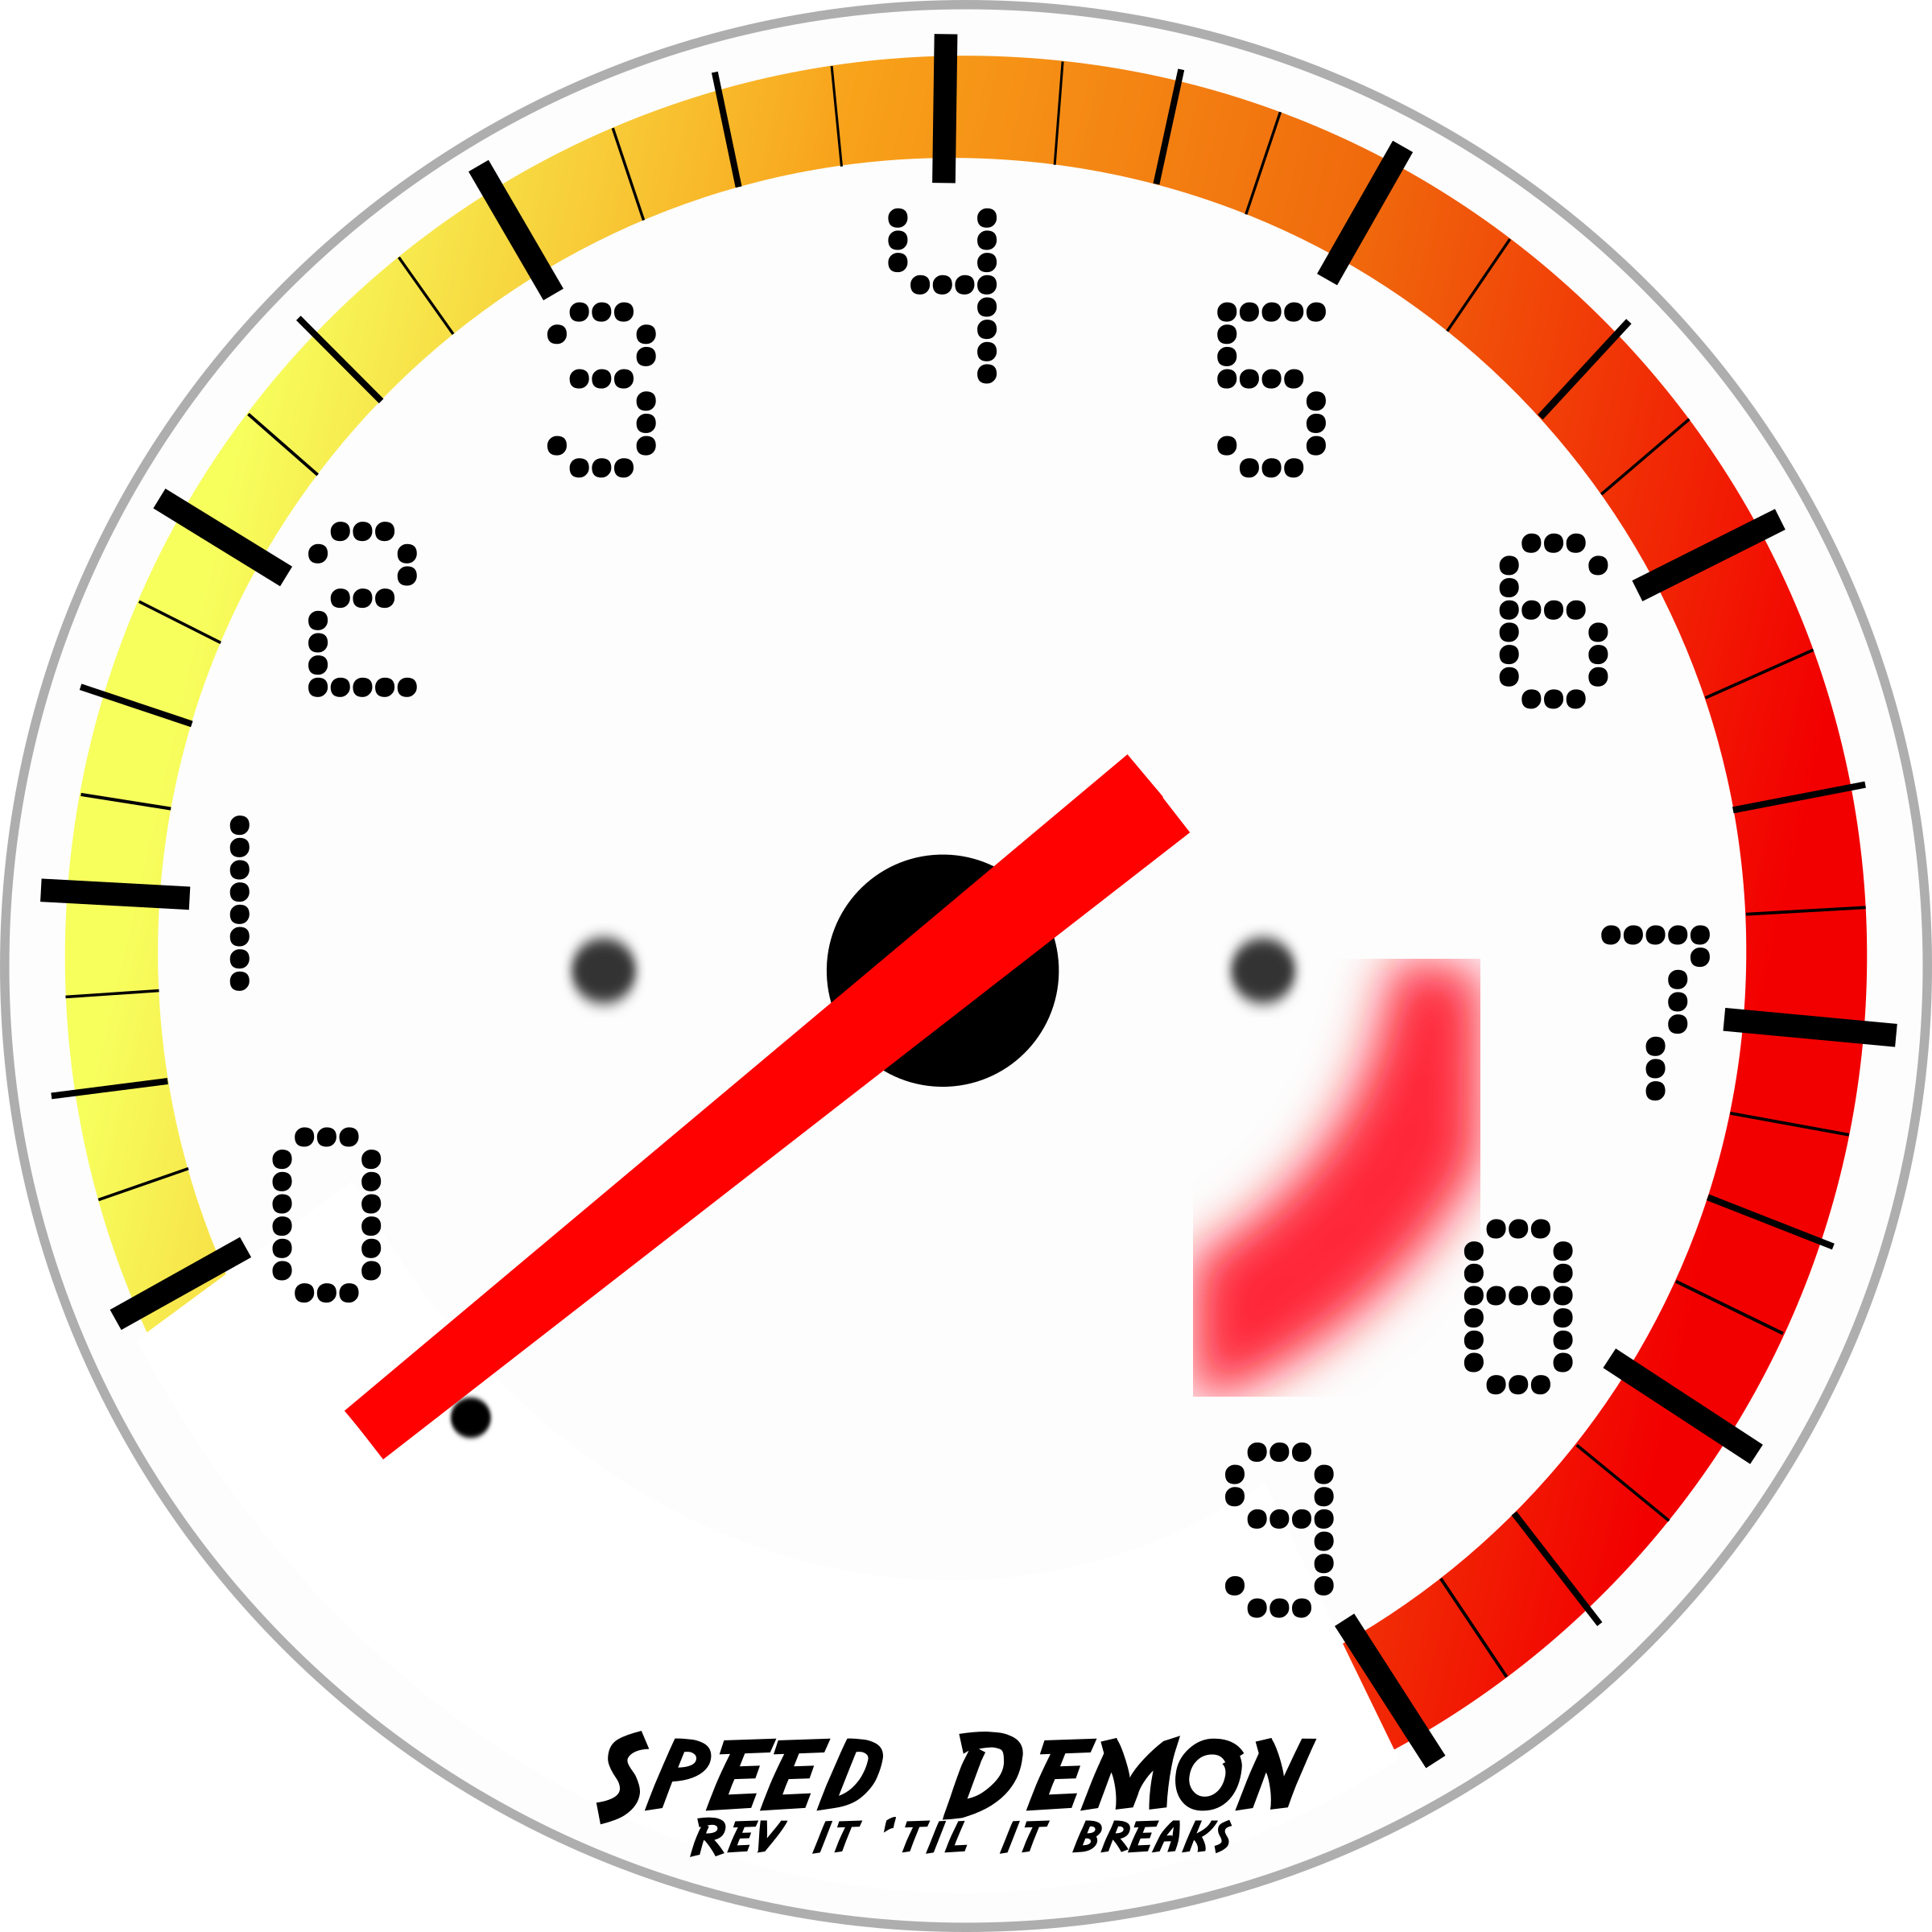 Tachometer by DigitaLink